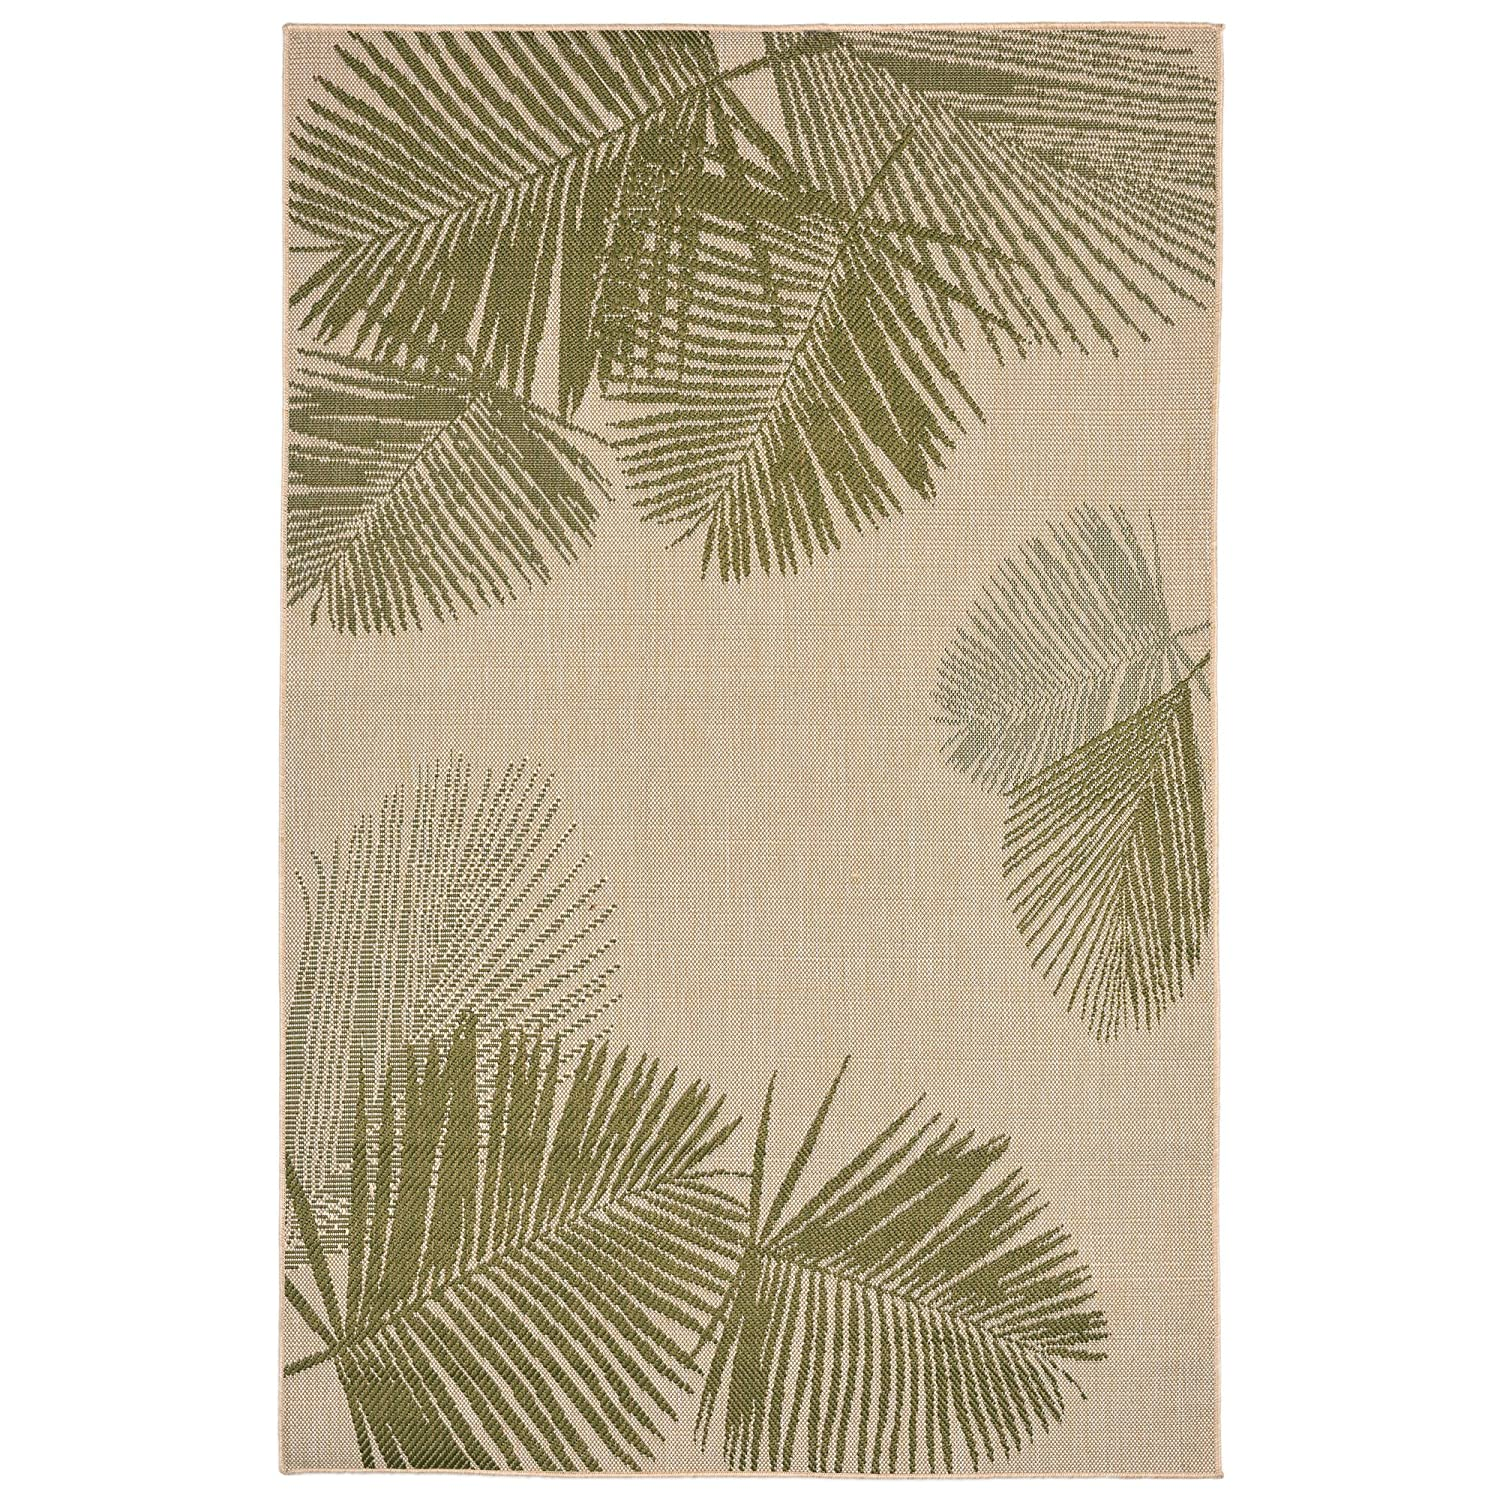 Liora Manne Veranda Soft Fronds Rug, 4'10 x 7'6, Green 4'10 x 7'6 The Trans Ocean Group TE358A74566